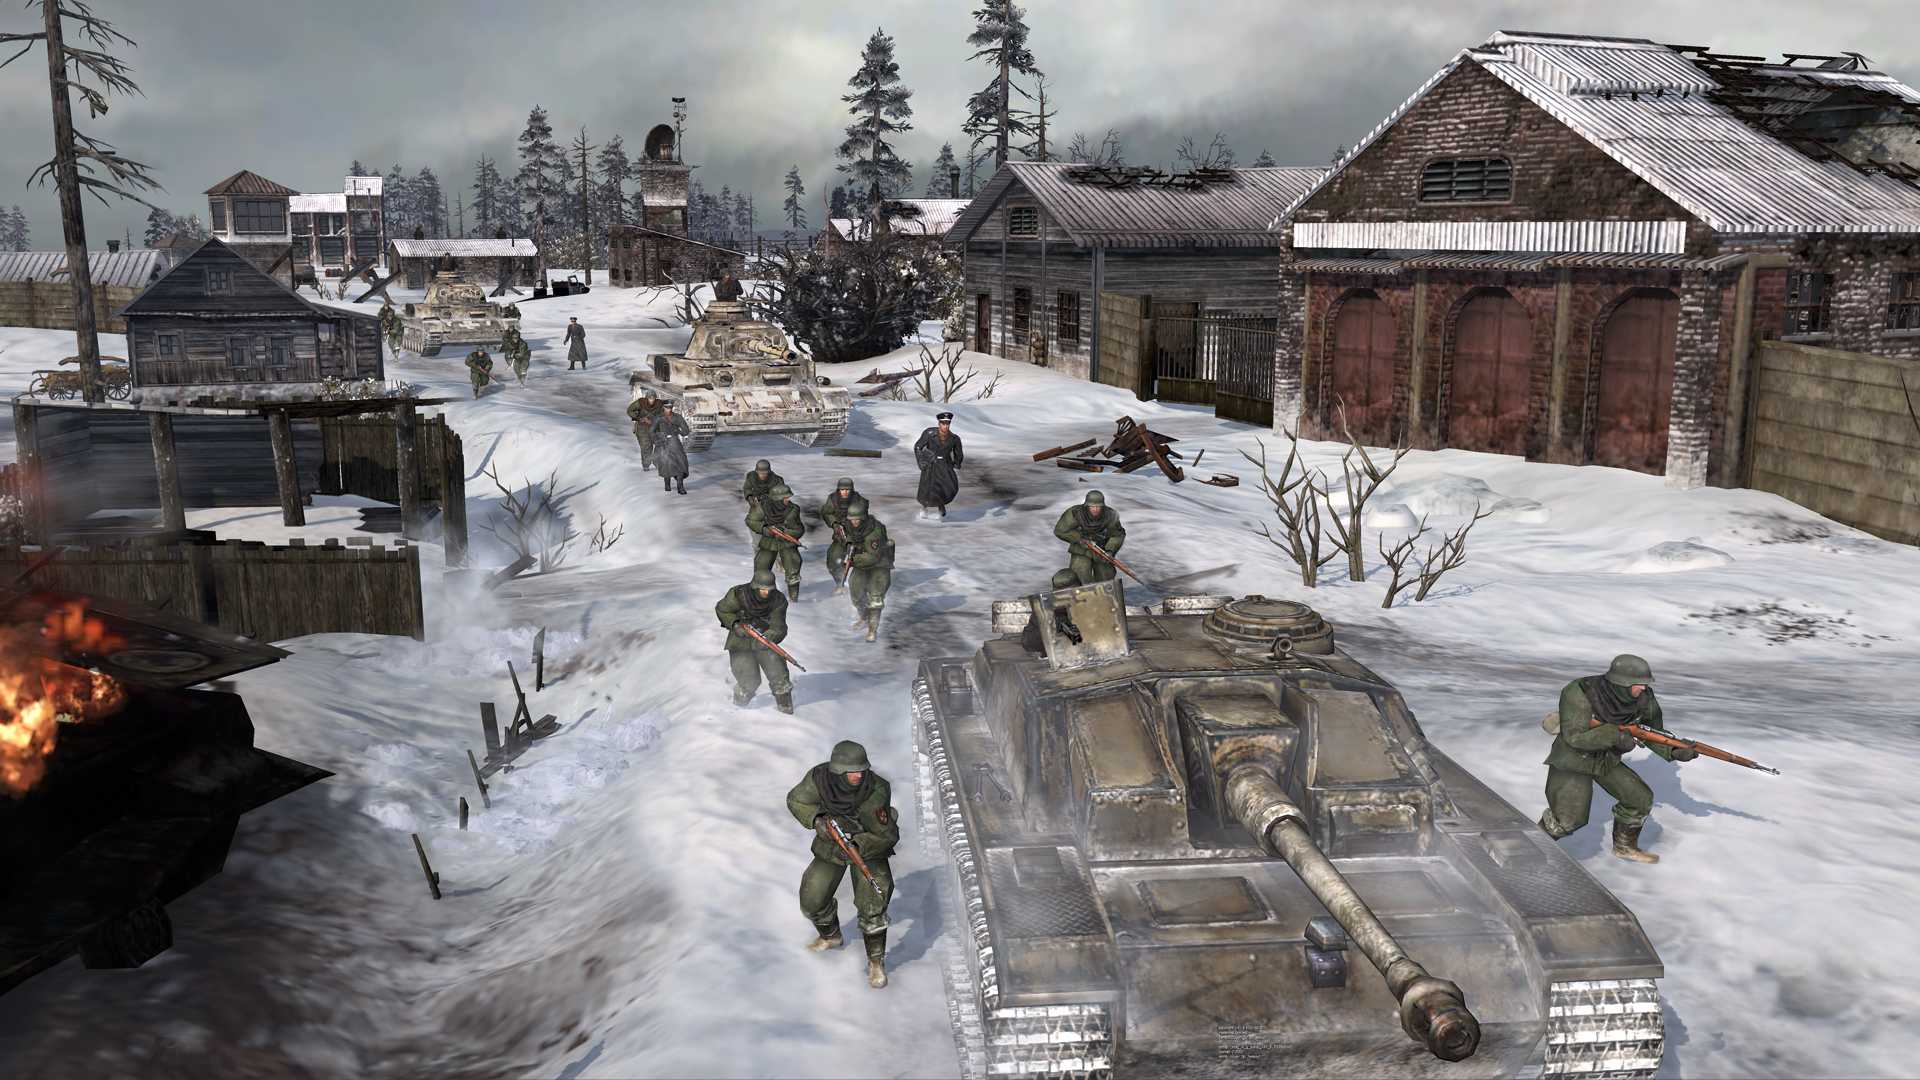 New details on coh 2 from gamescom updated gamereplays org